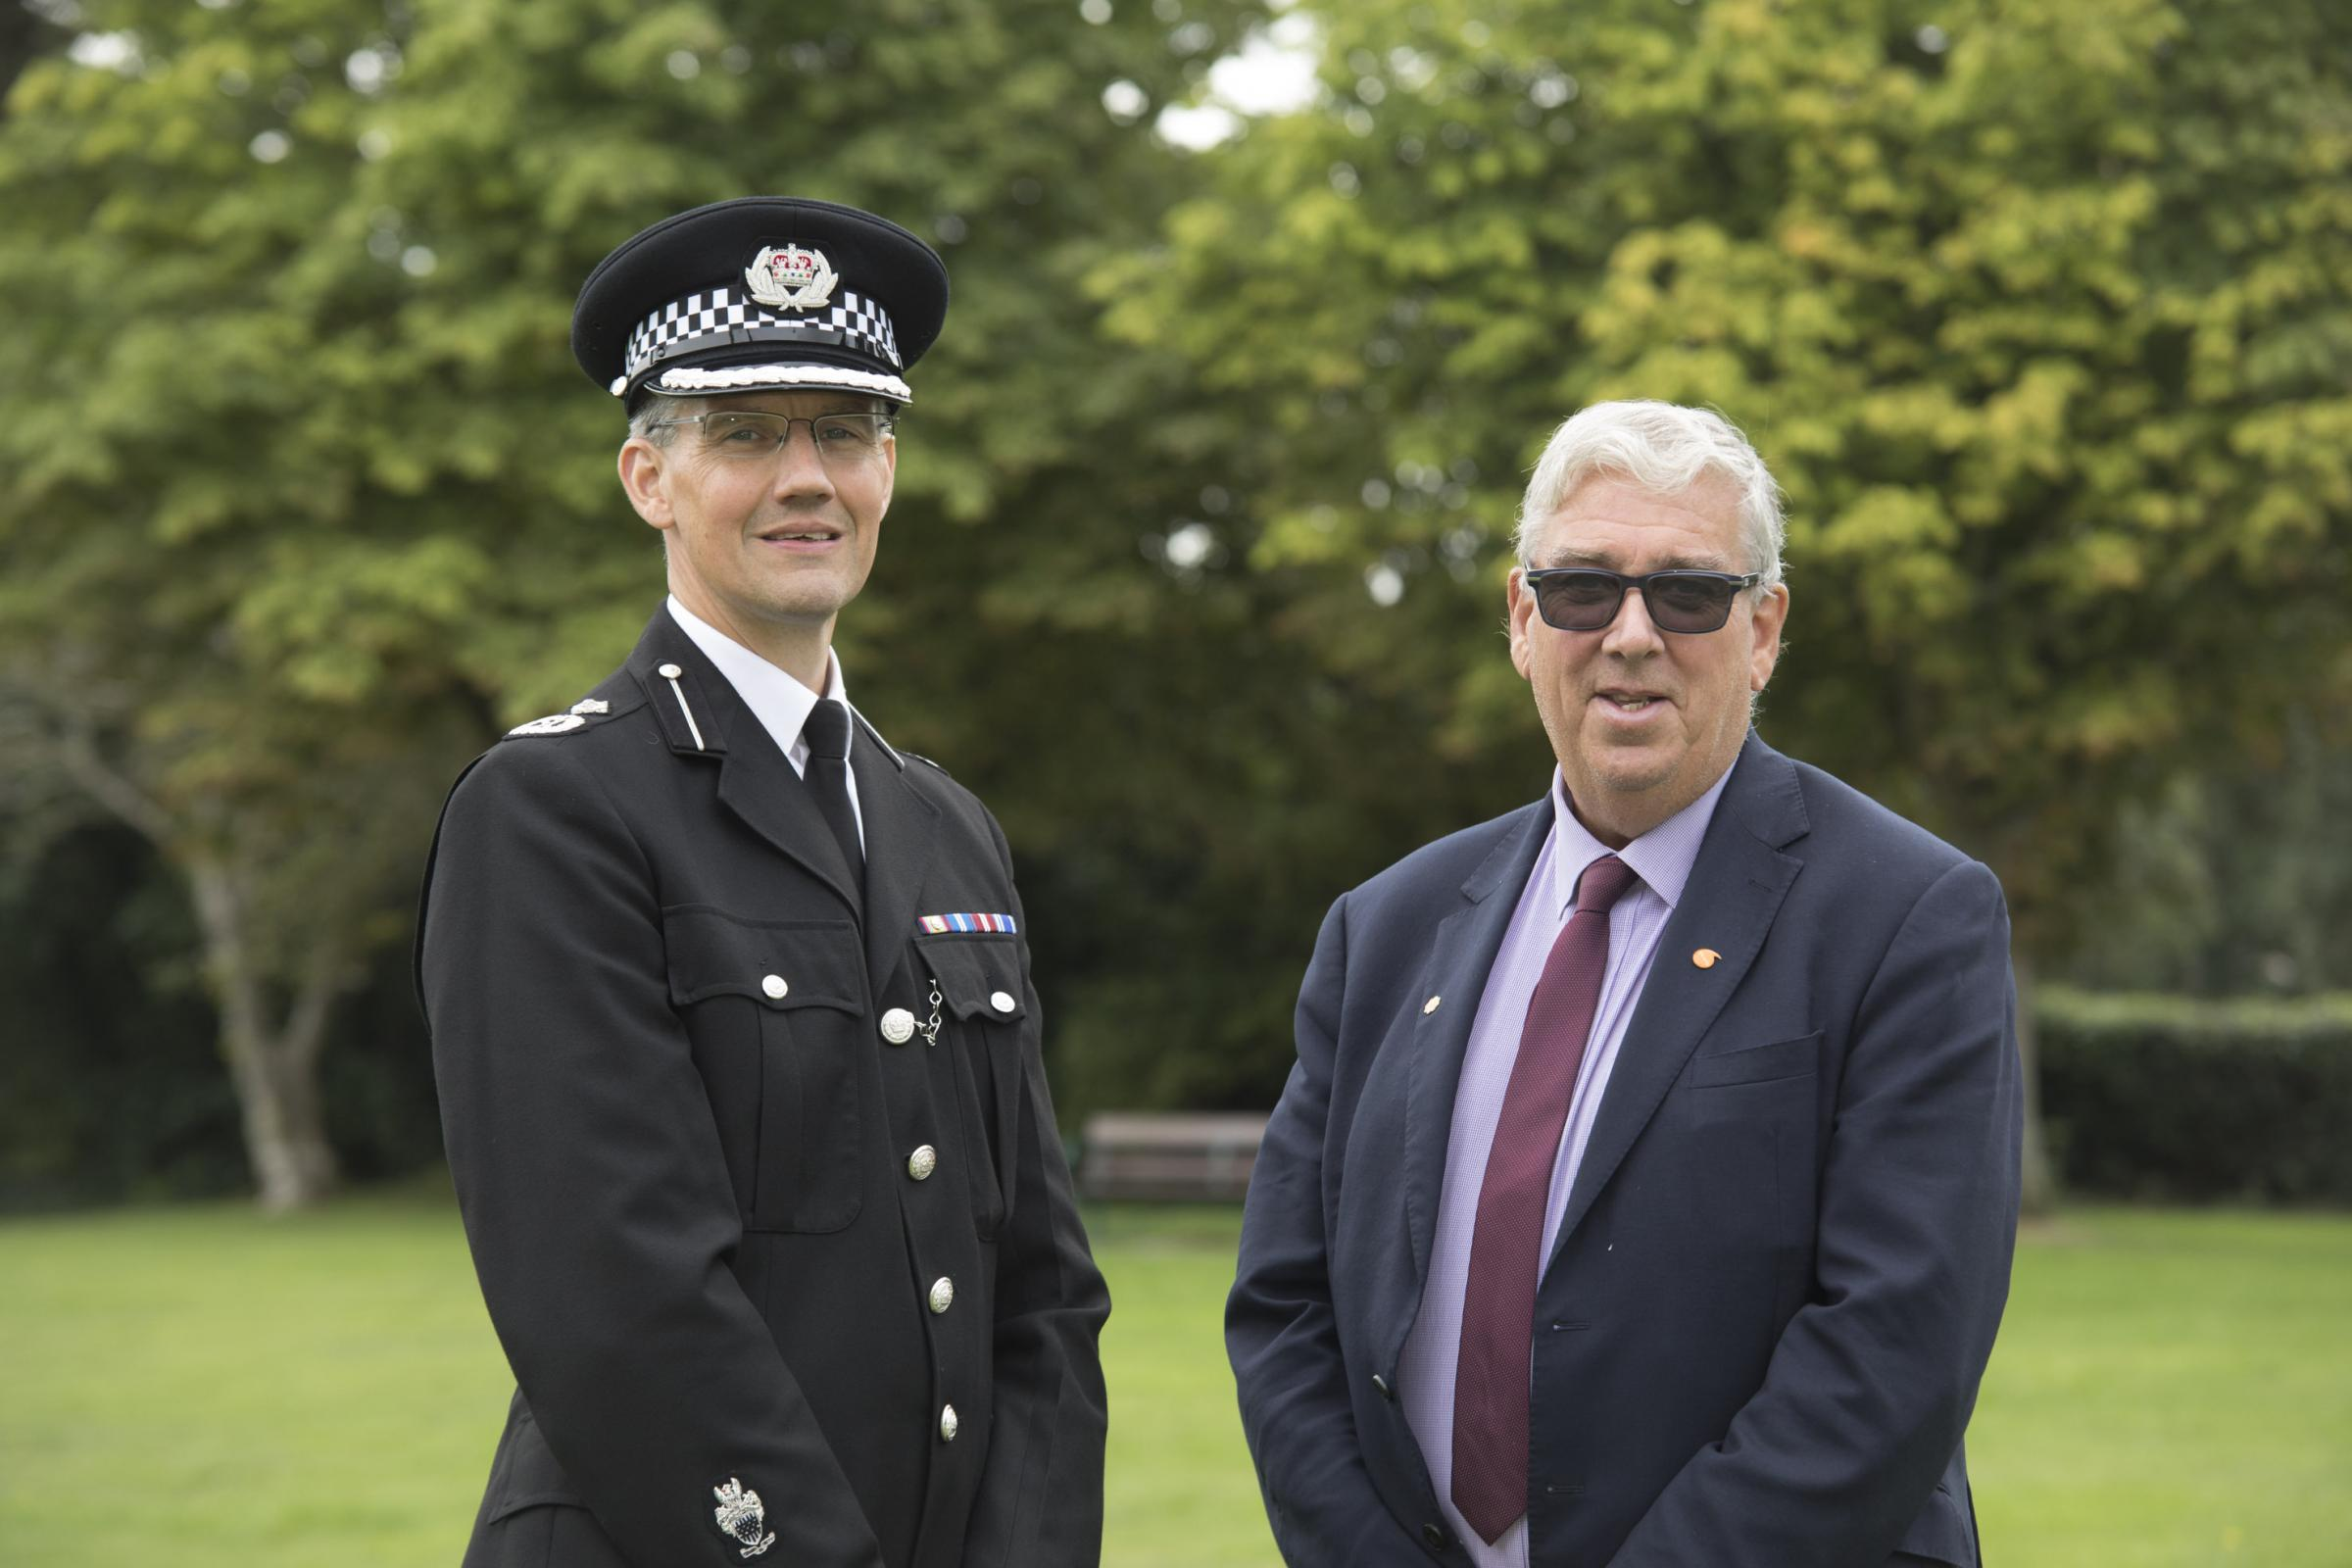 New Chief Constable of North Wales Carl Foulkes with PCC Arfon Jones.